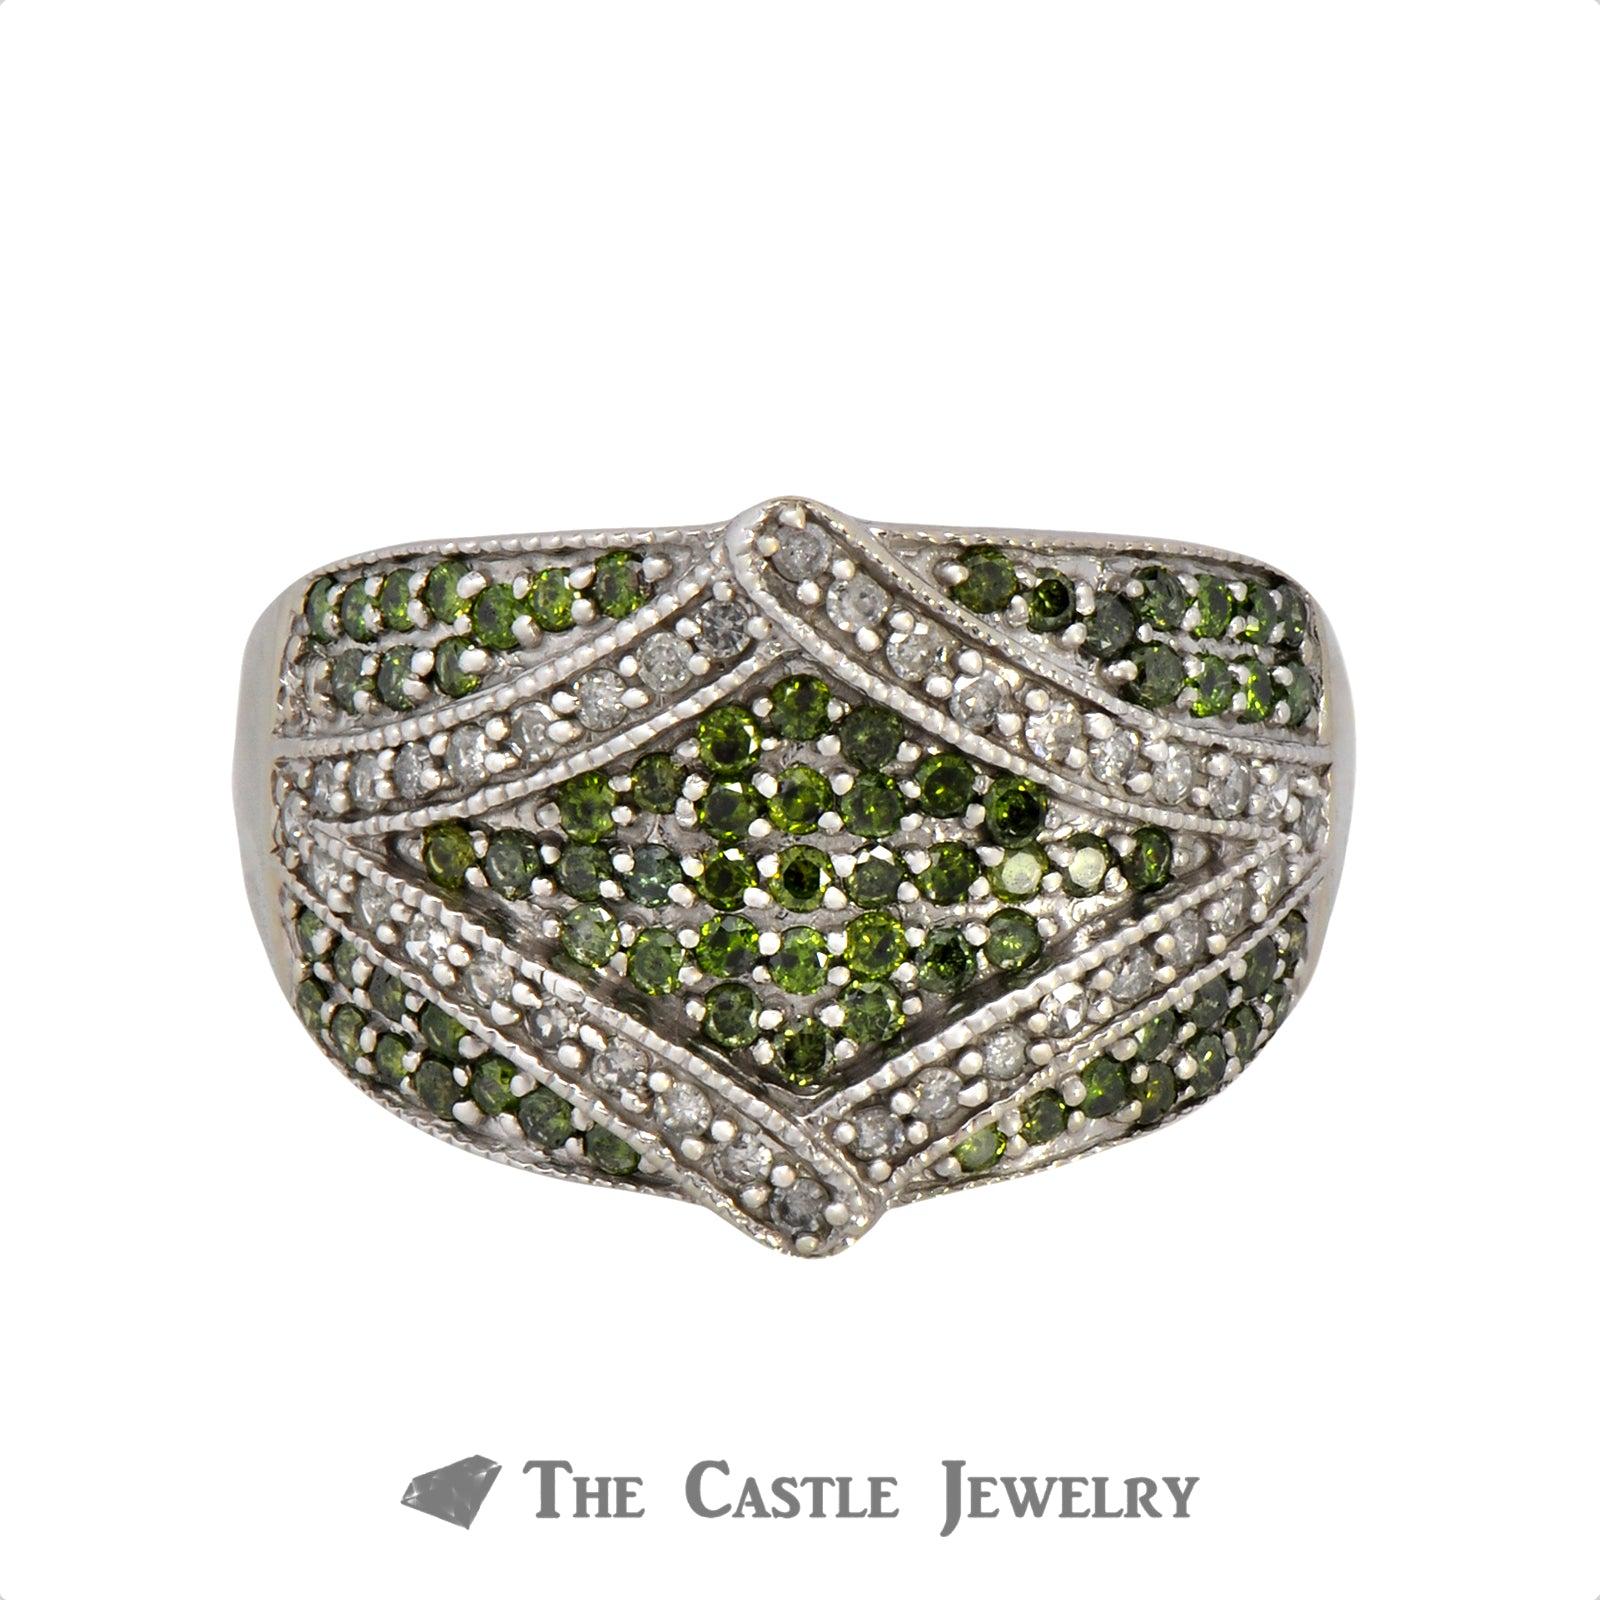 Green & White Diamond Cluster Ring With Fancy Rectangle Shaped Design